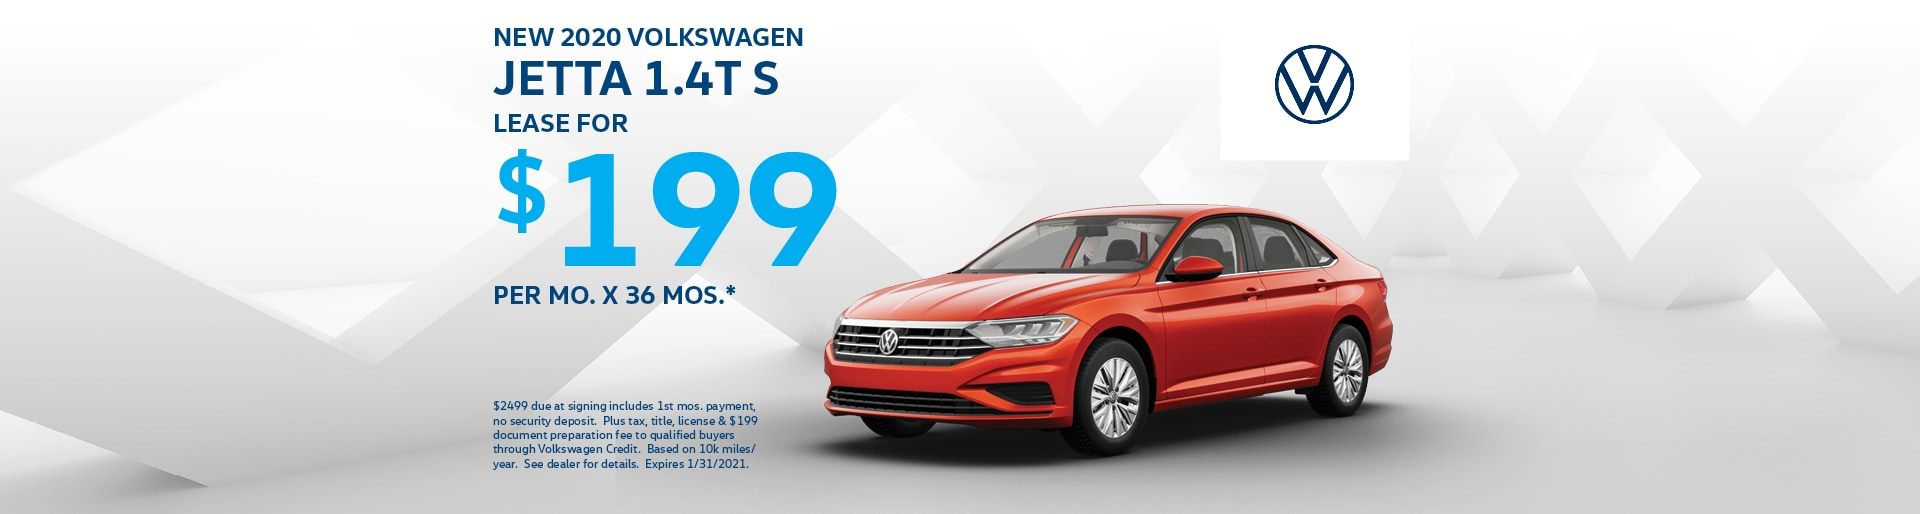 2020 Jetta $199 Lease at Team VW | Merrillville, IN